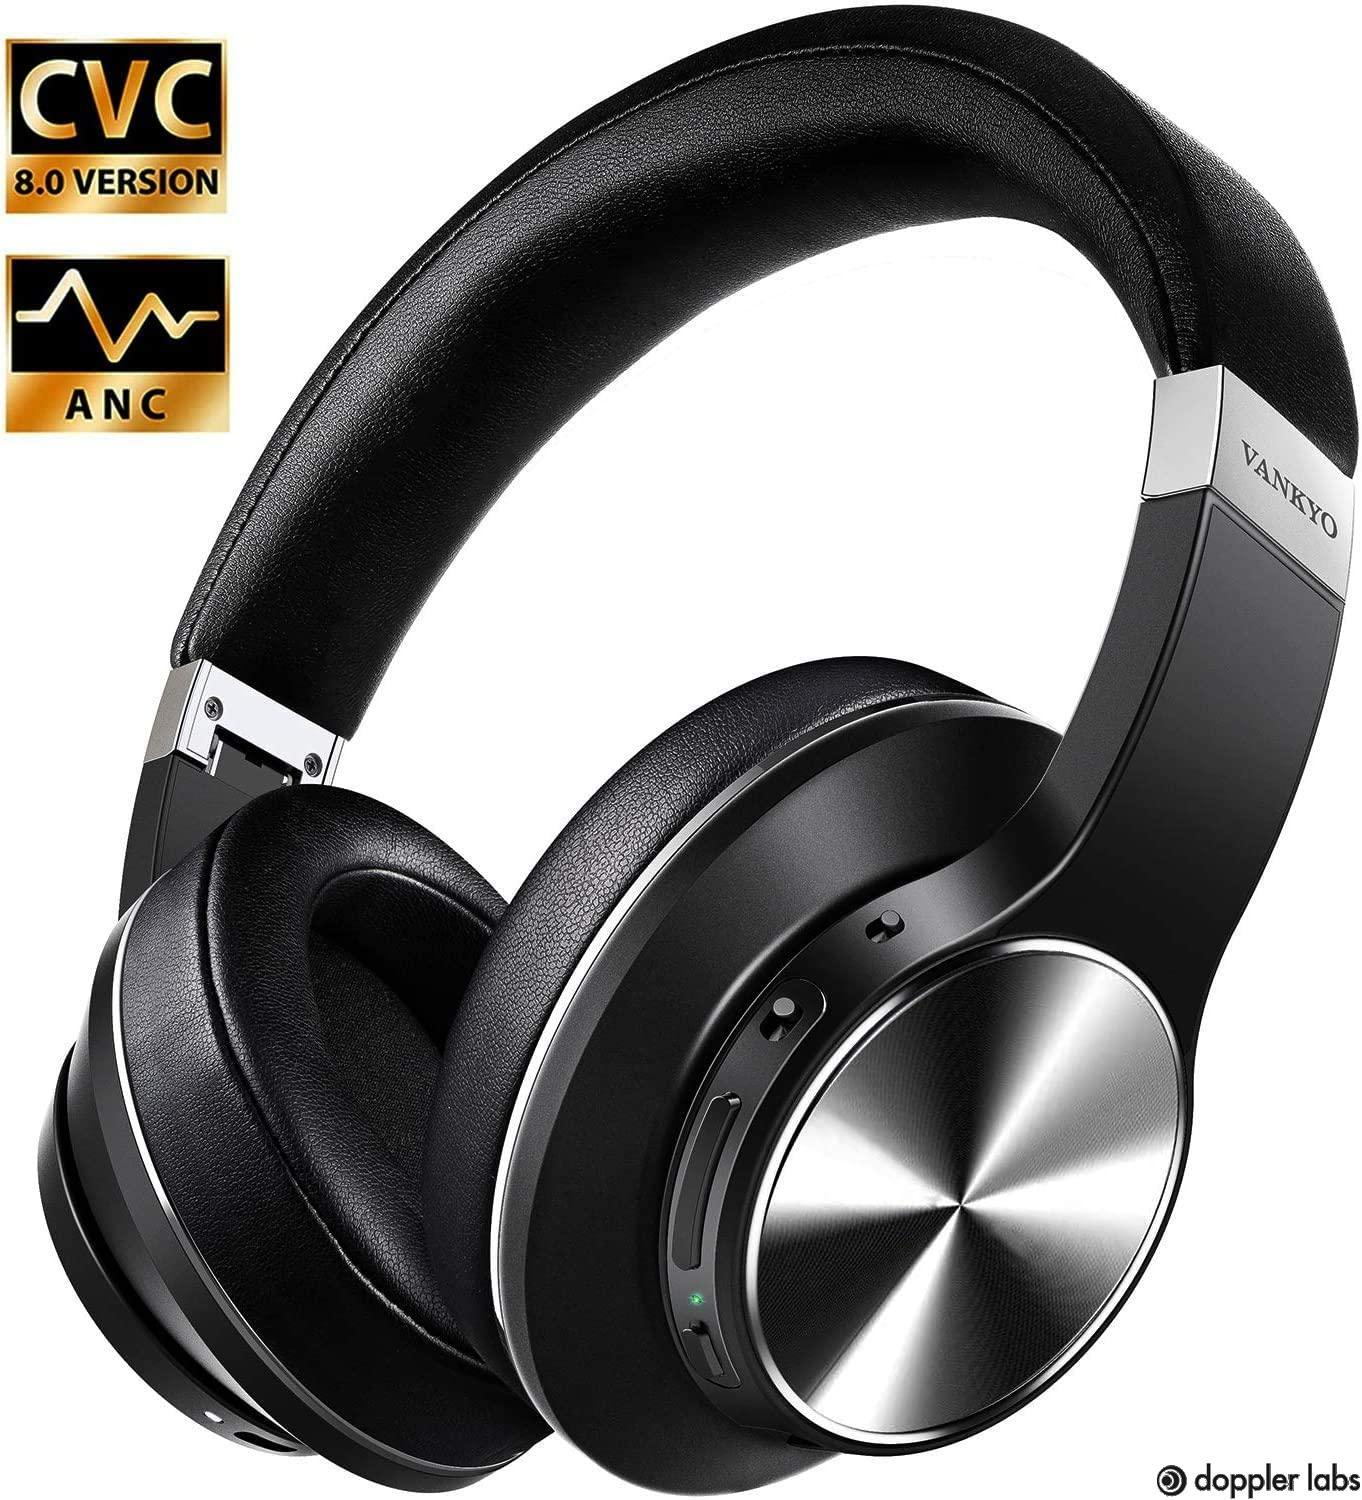 VANKYO C751 Wireless Over-ear Headphones